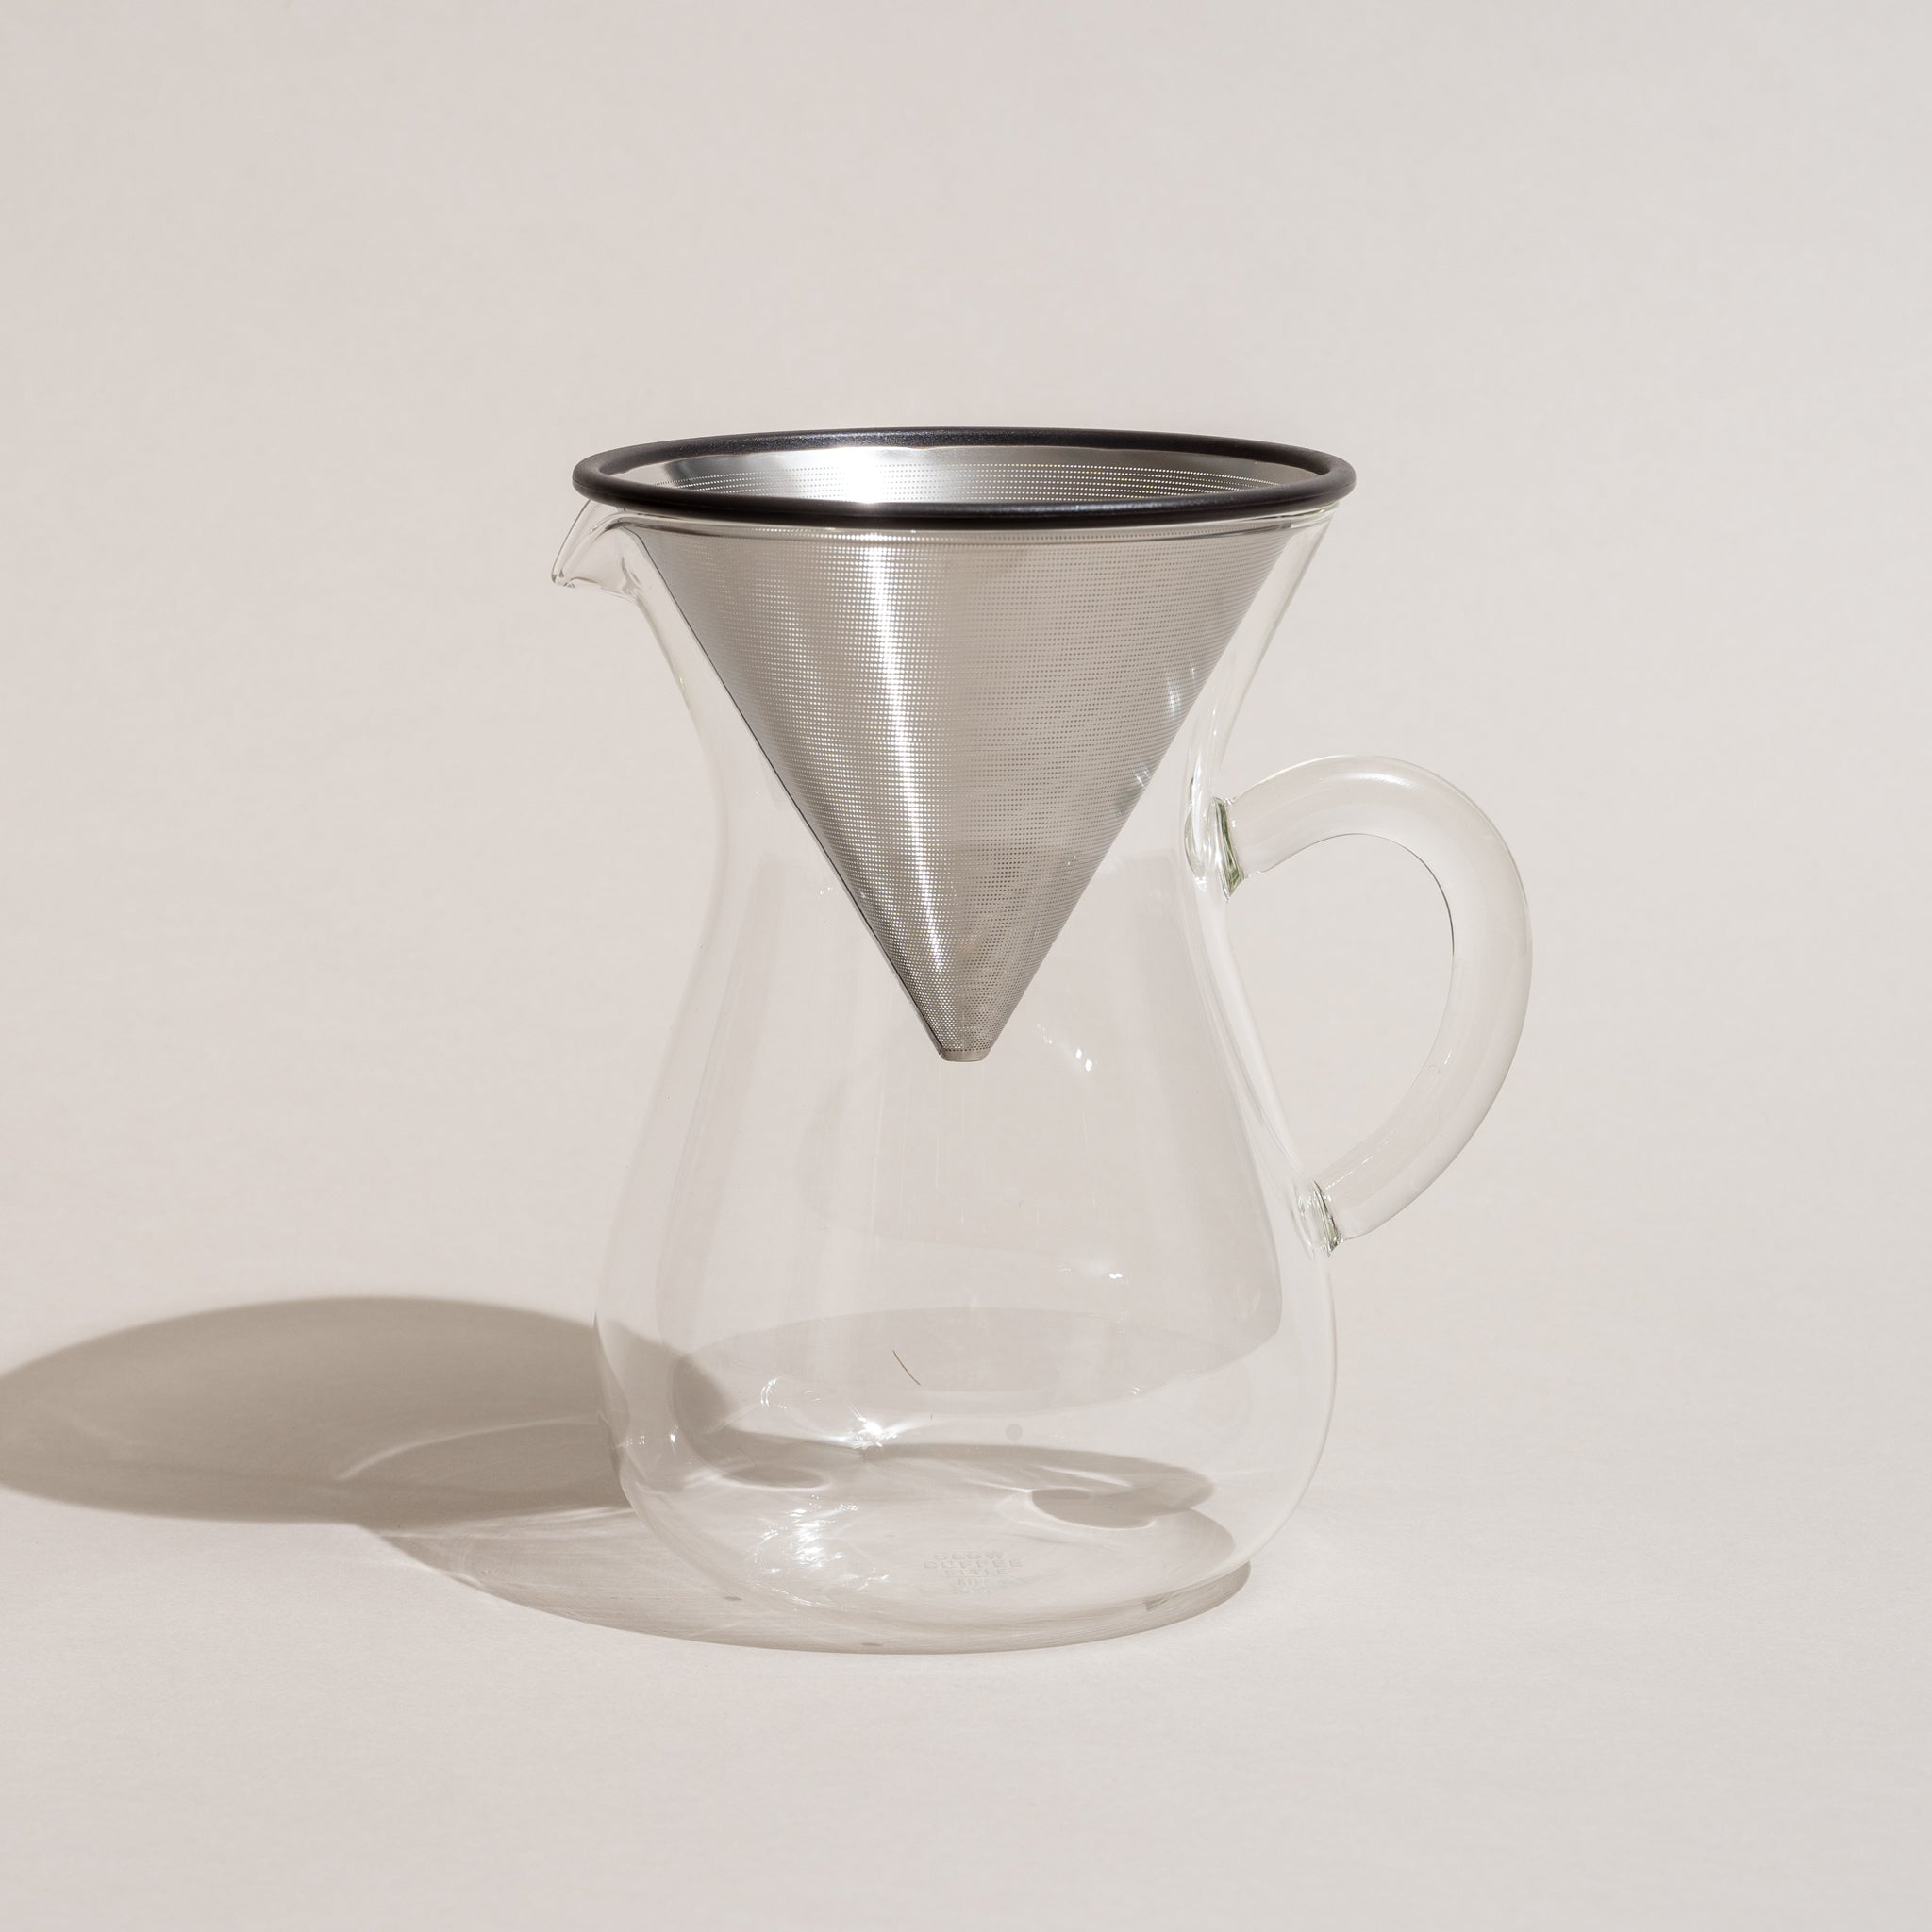 SCS Coffee Carafe Set